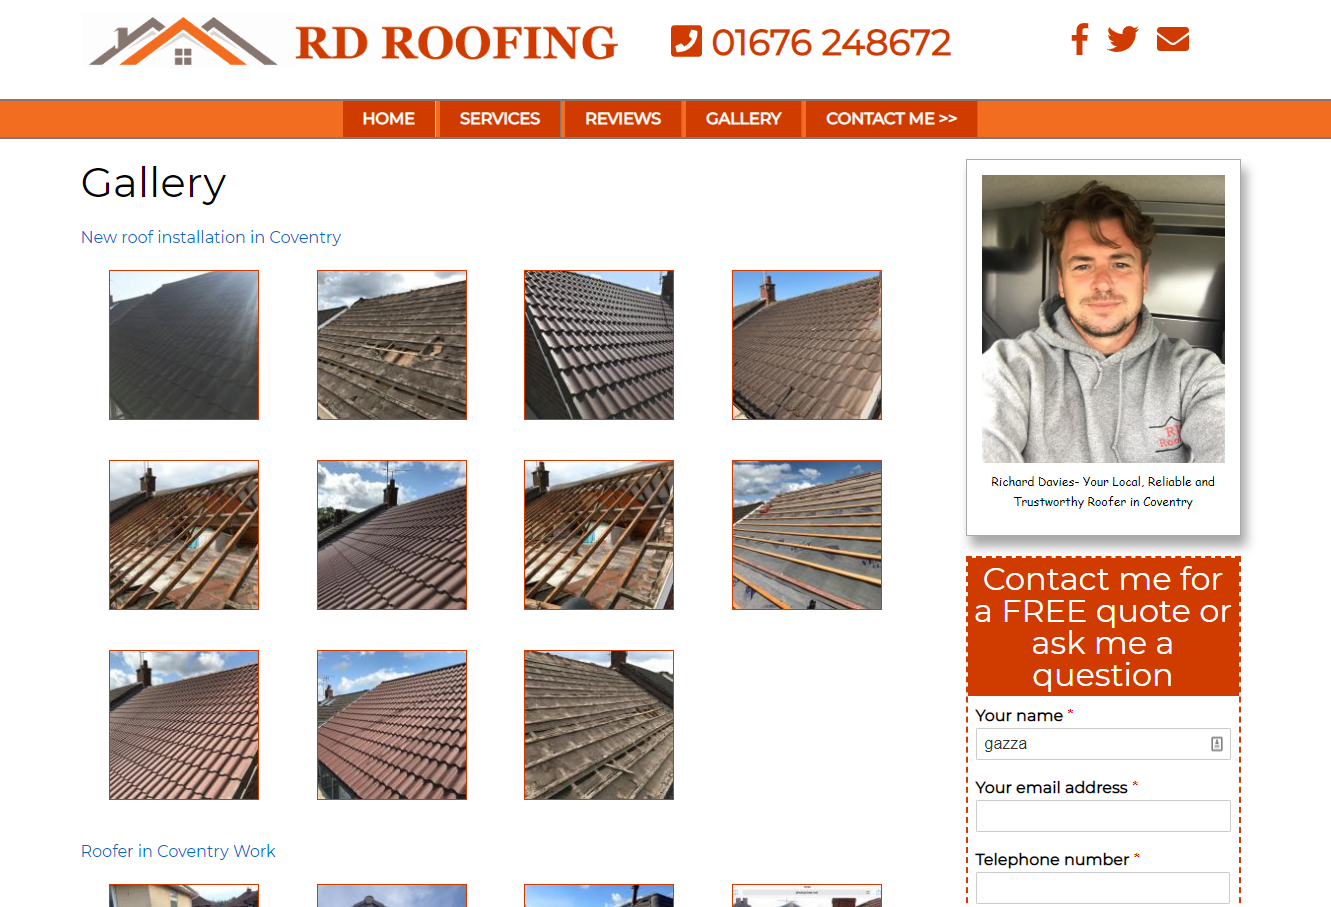 Roofer in Coventry